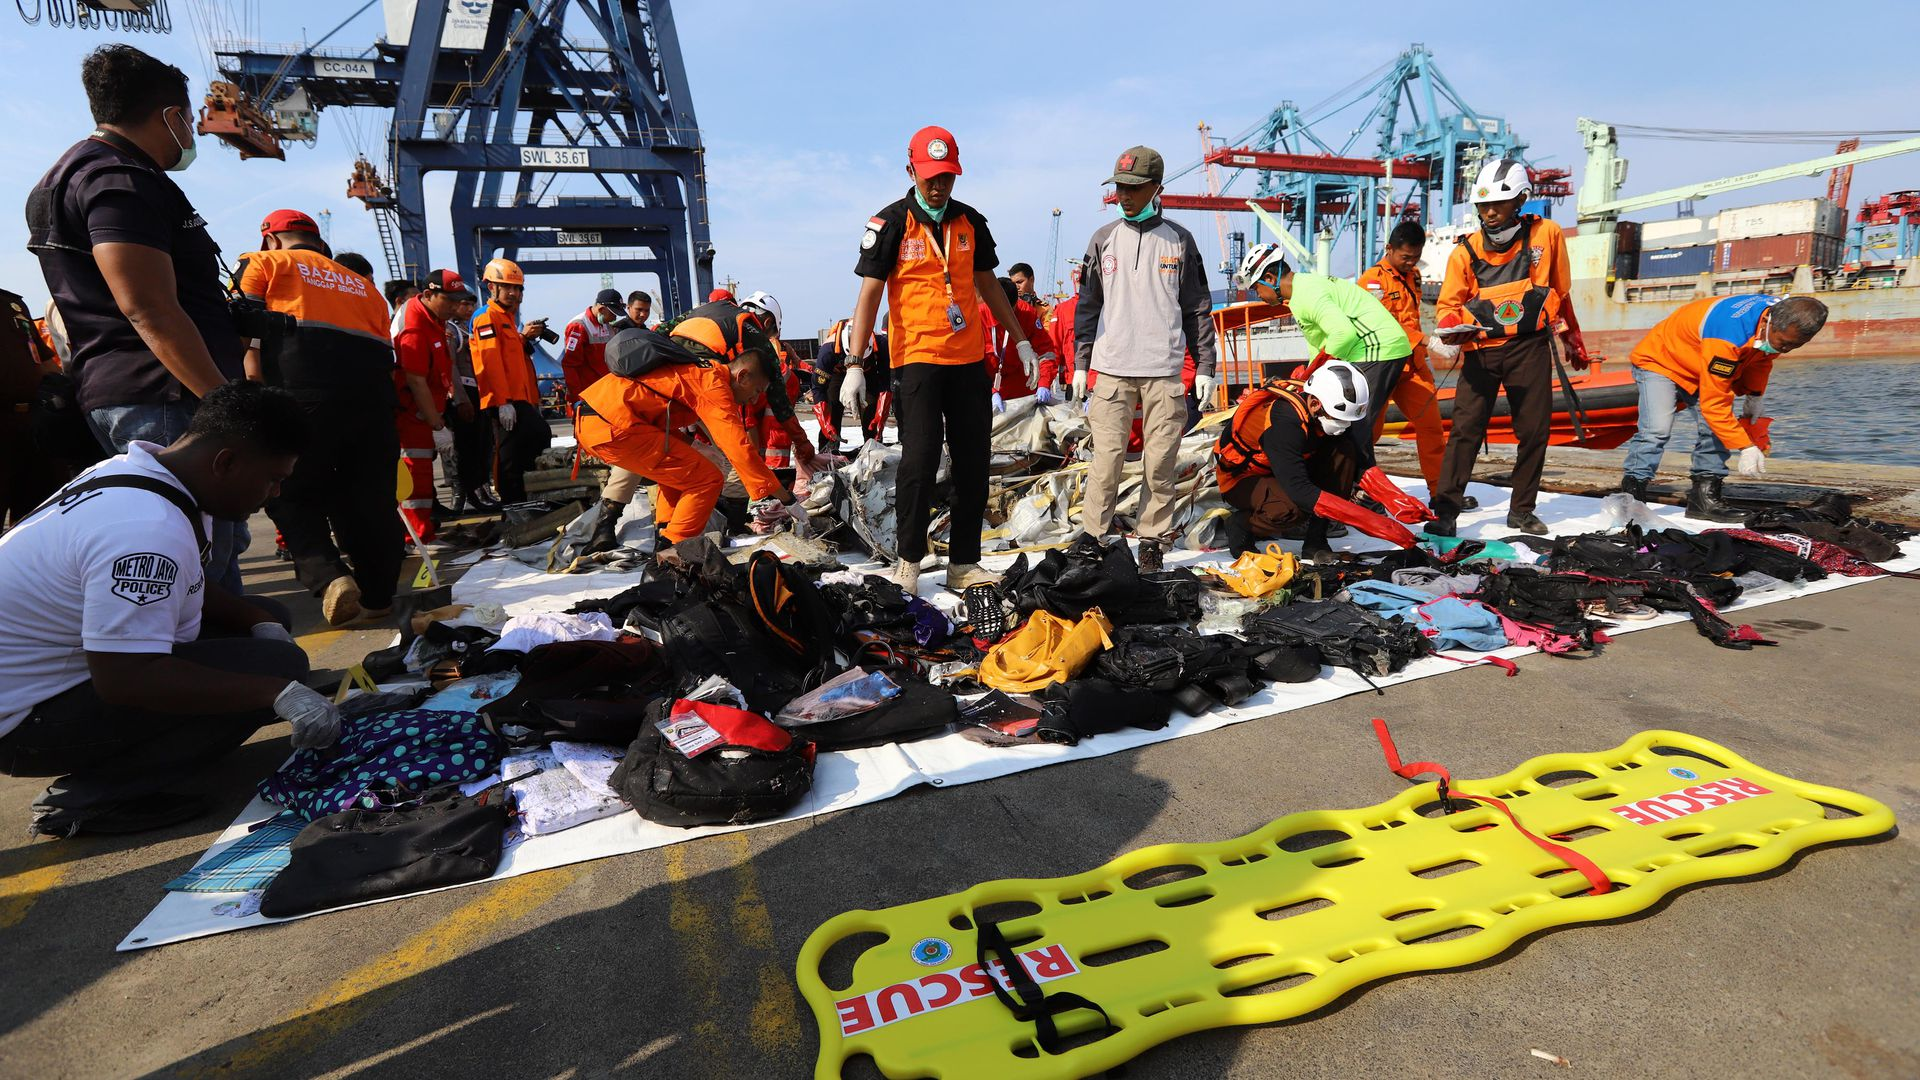 Rescue operations in Indonesia